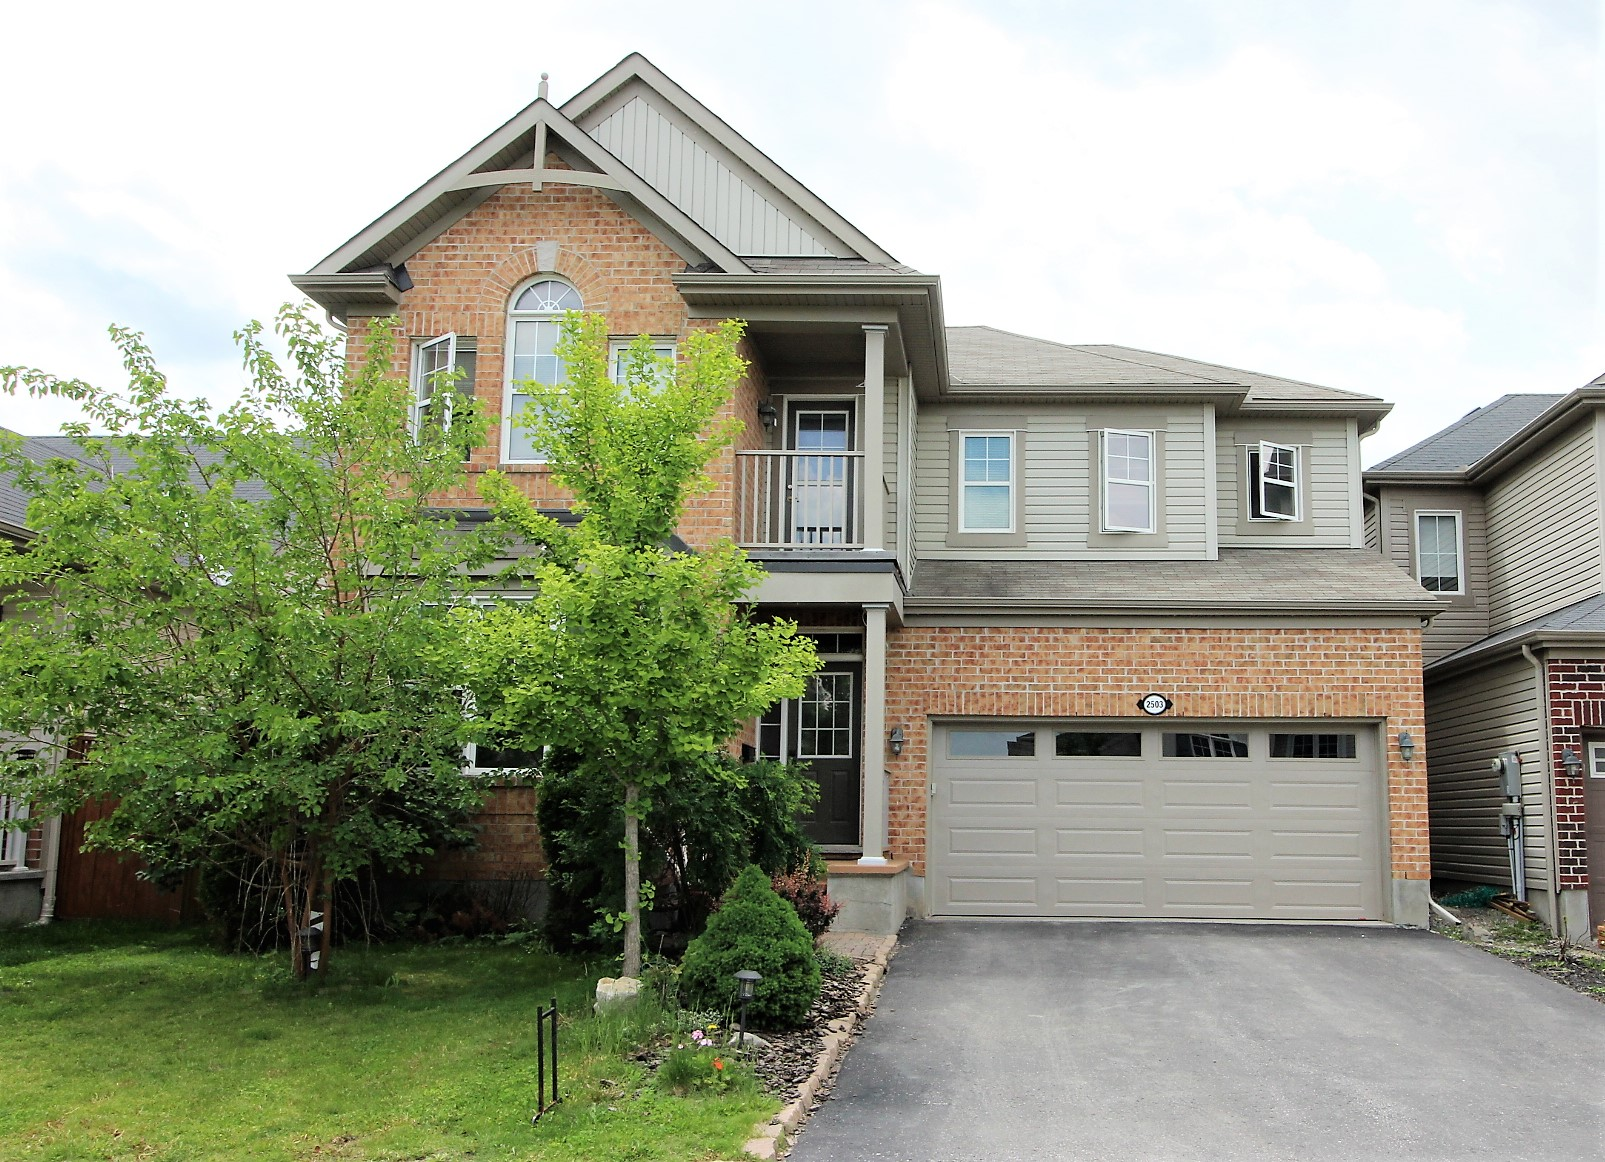 2503 Stone Cove Cres - Gorgeous 4 plus 1 Bed, 3.5 Bath Detached Home in Half Moon Bay area!